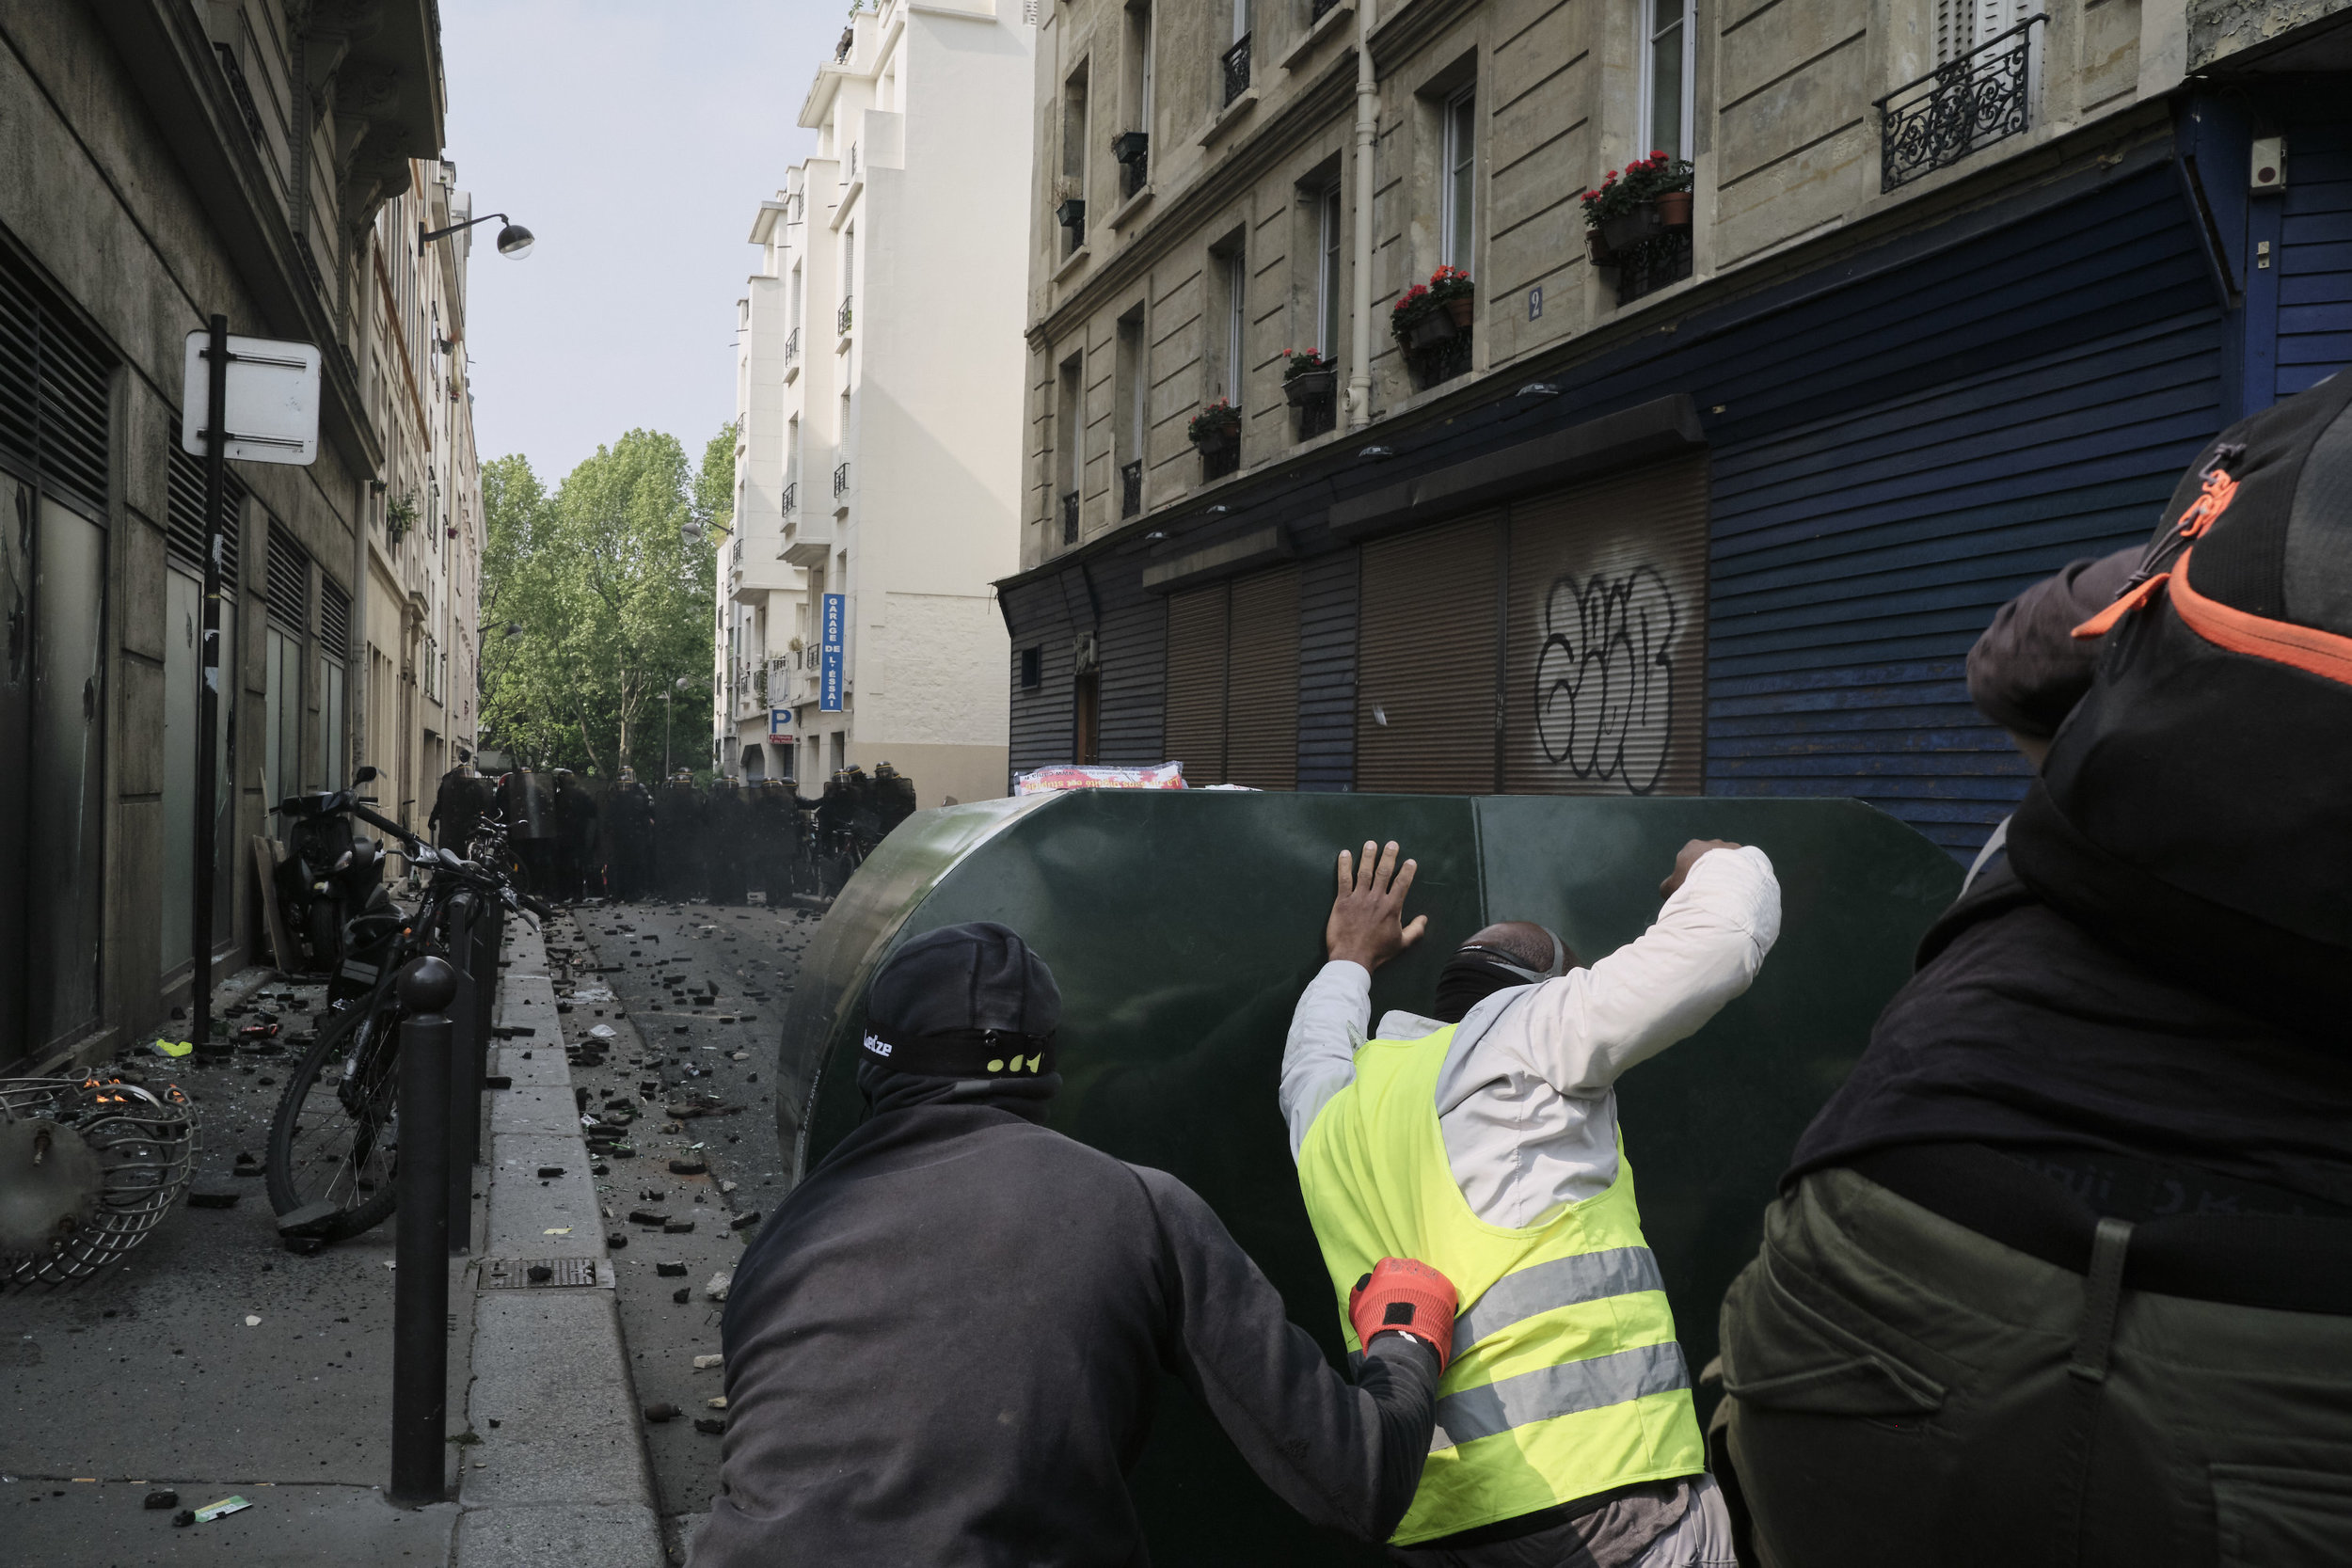 Protesters pushing the police away with their mobile blockade during a violent confrontation at The Boulevard Arago.